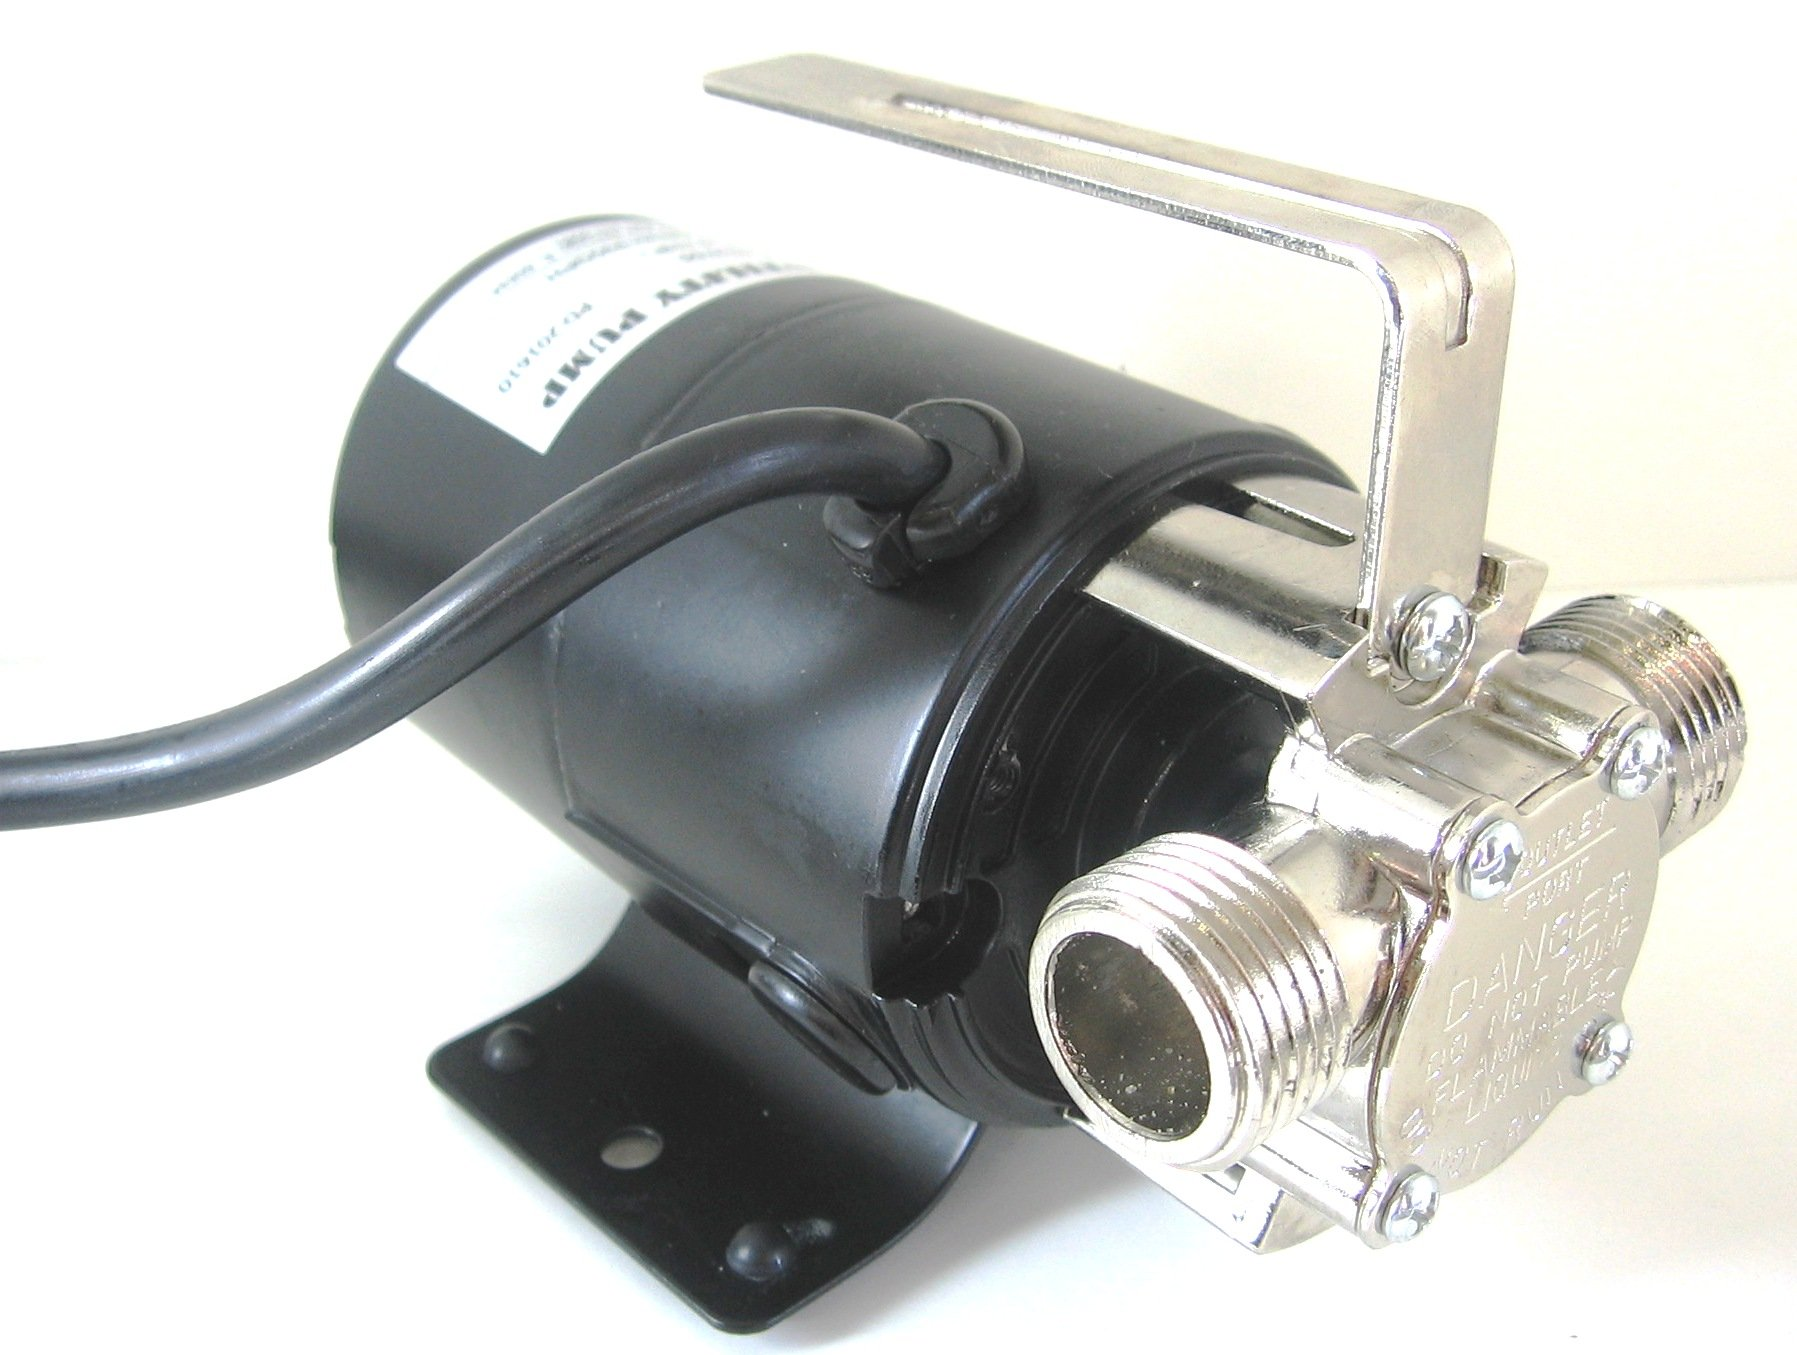 Portable Water Transfer Utility Pump 330 GPH, 115-Volt with Metal Connectors that are Standard 3/4'' Garden Hose